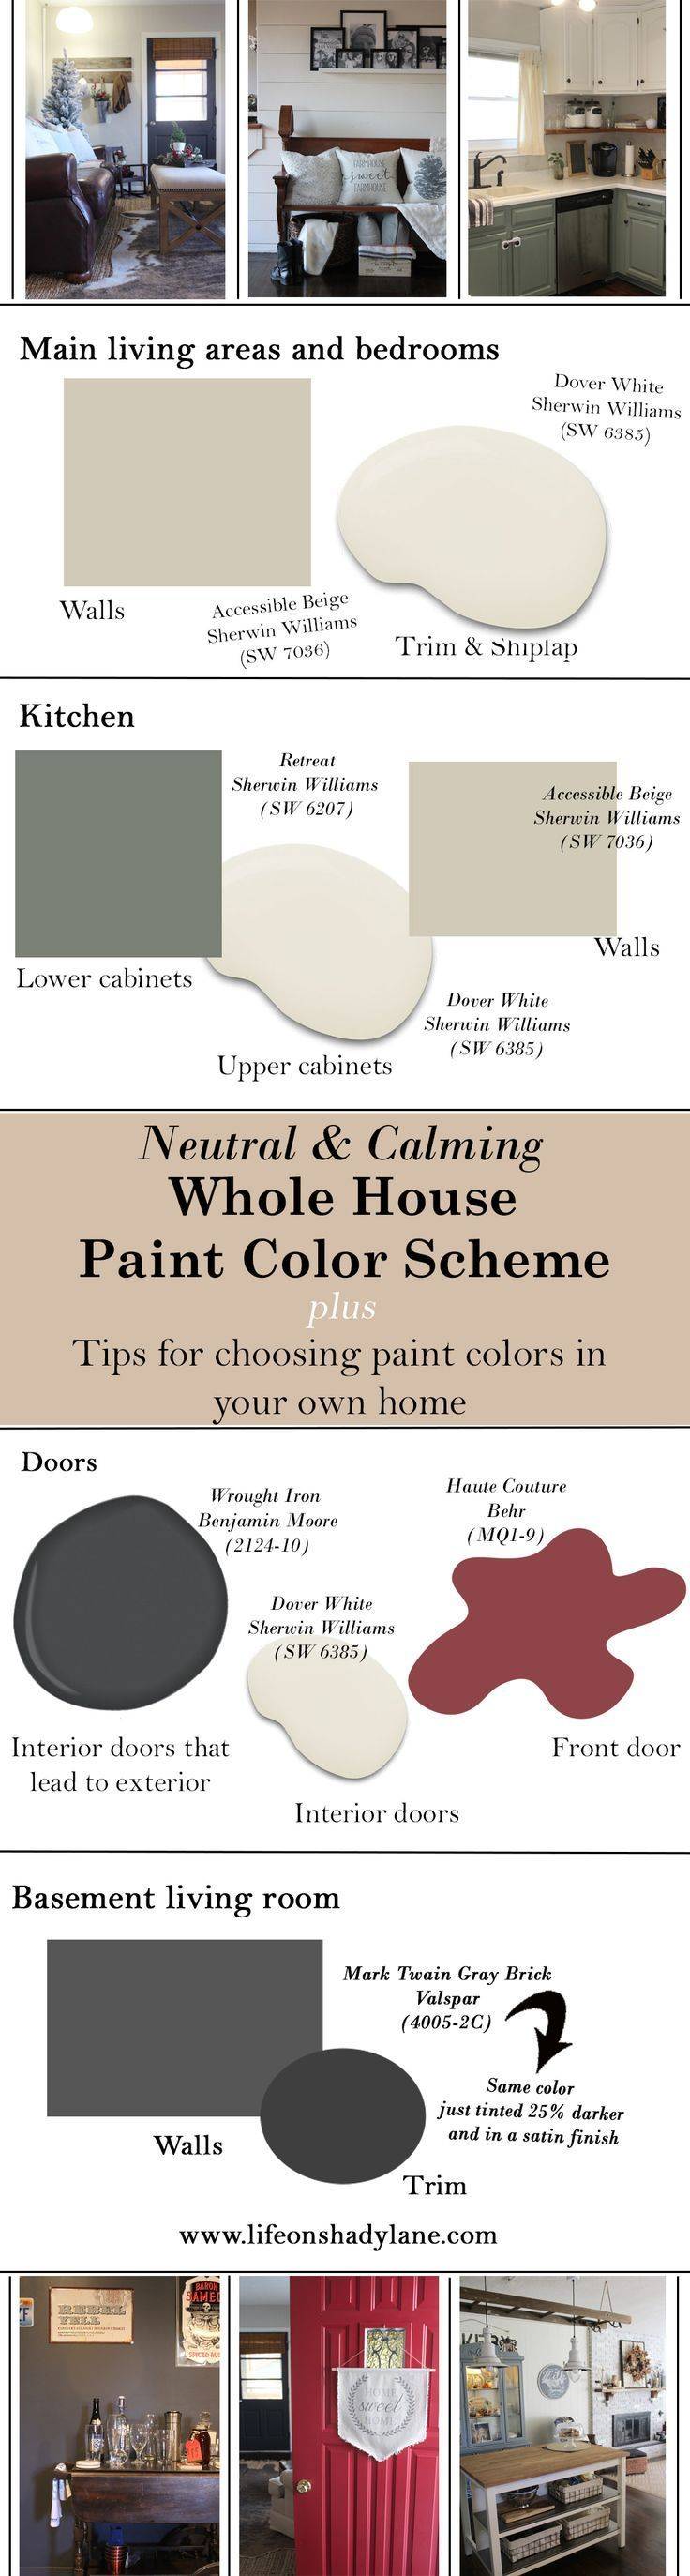 The paint colors we used in our home + my tips on picking colors ...